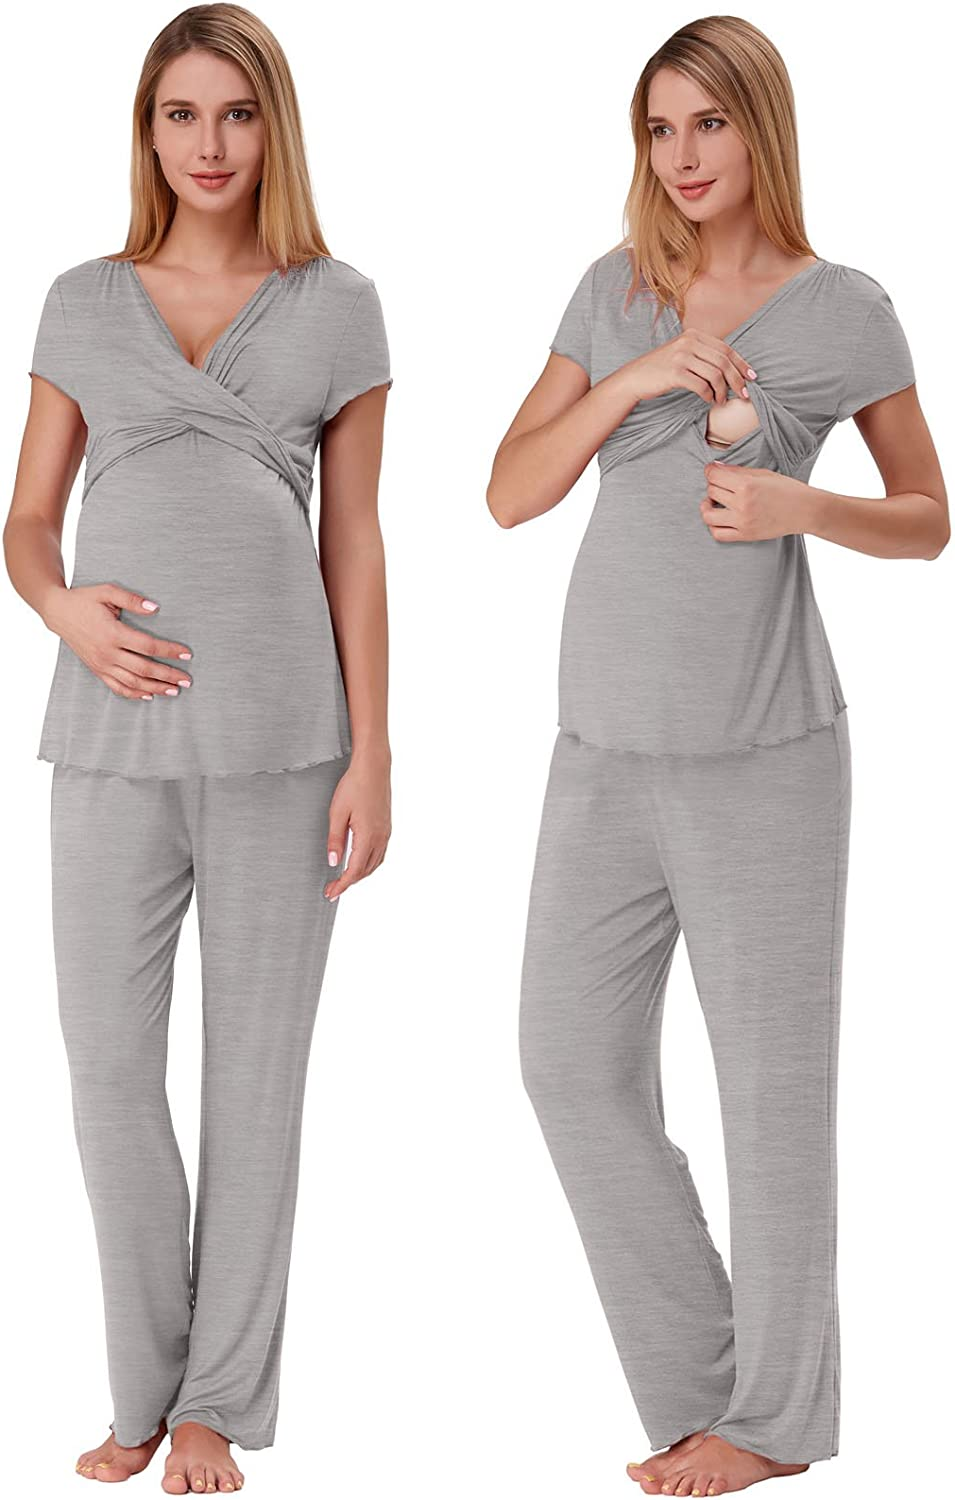 Zexxxy Women Ultra Soft Maternity & Nursing Pajama Set Pregnancy Sleepwear